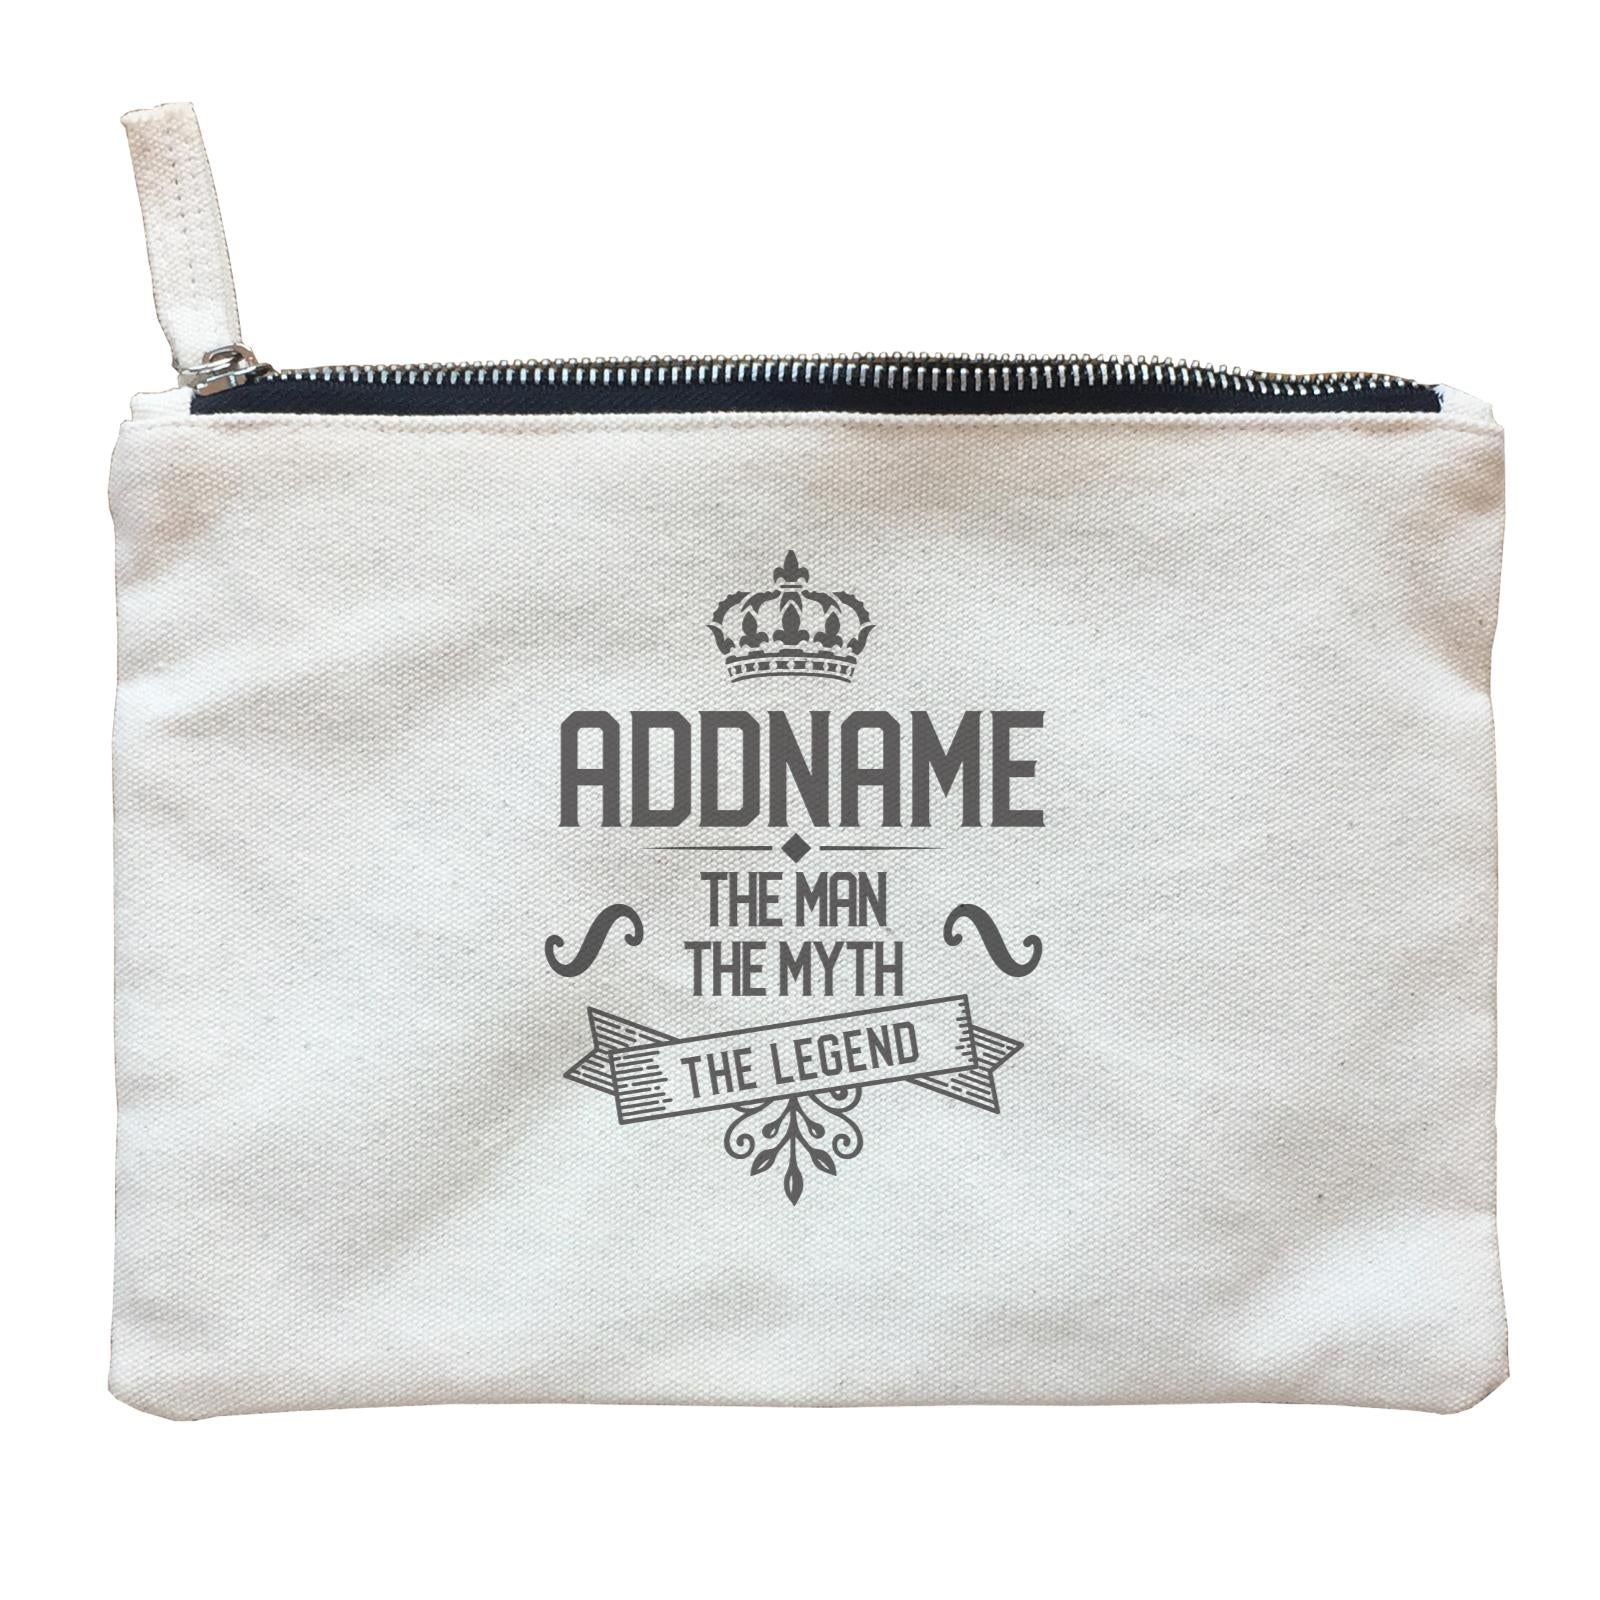 Personalize It Birthyear Addname The Man The Myth with Add Year Zipper Pouch